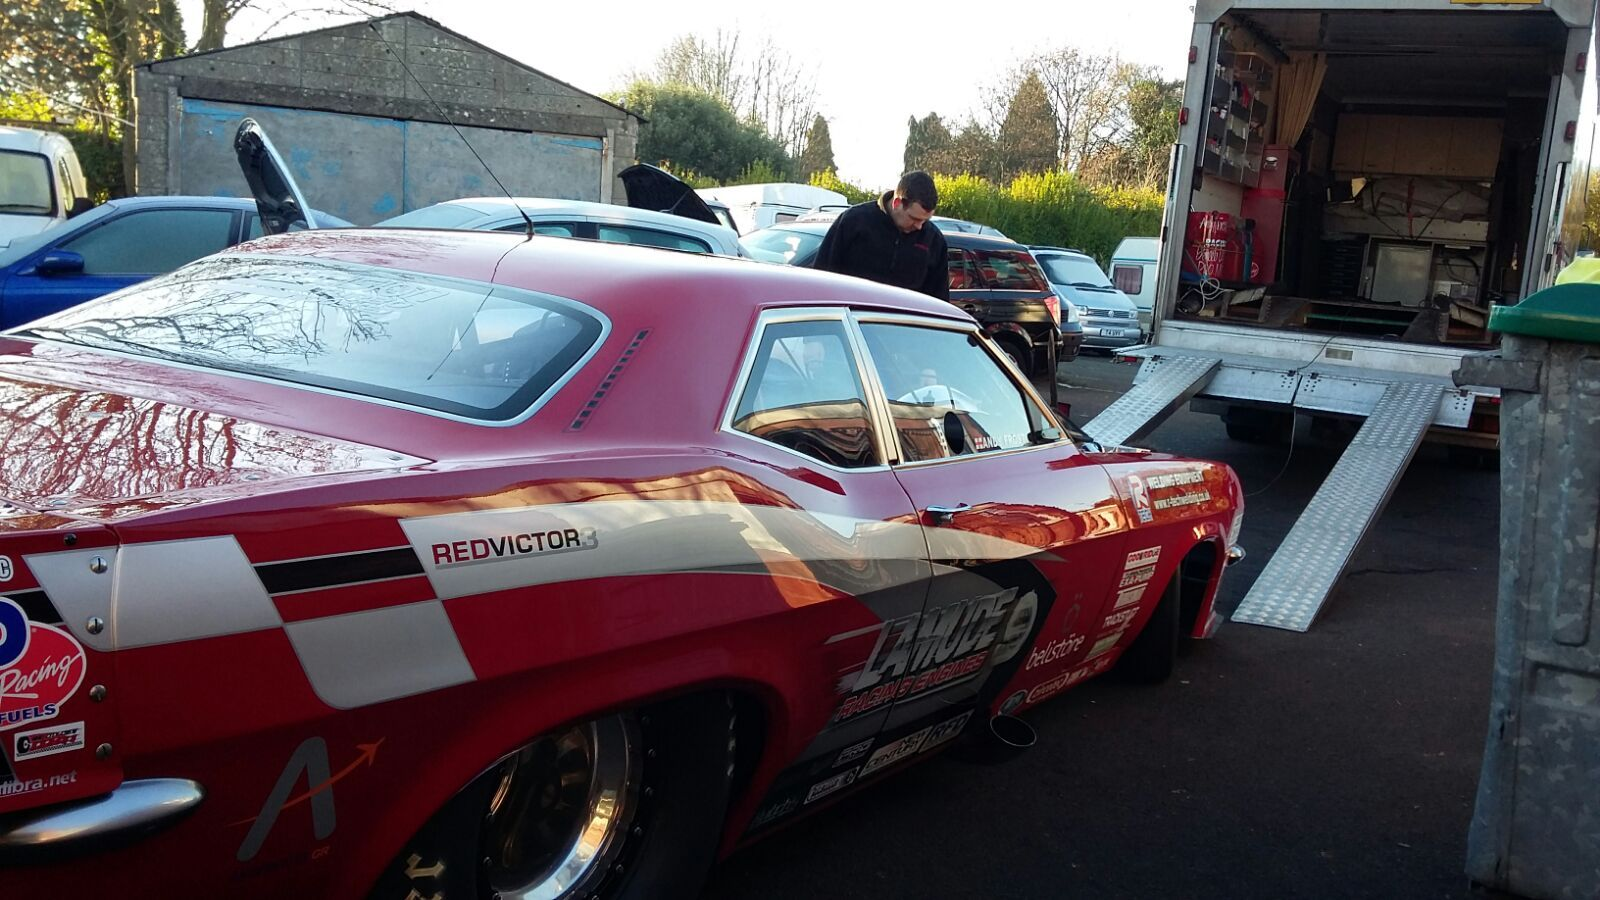 British drag racer andy frost is going international once